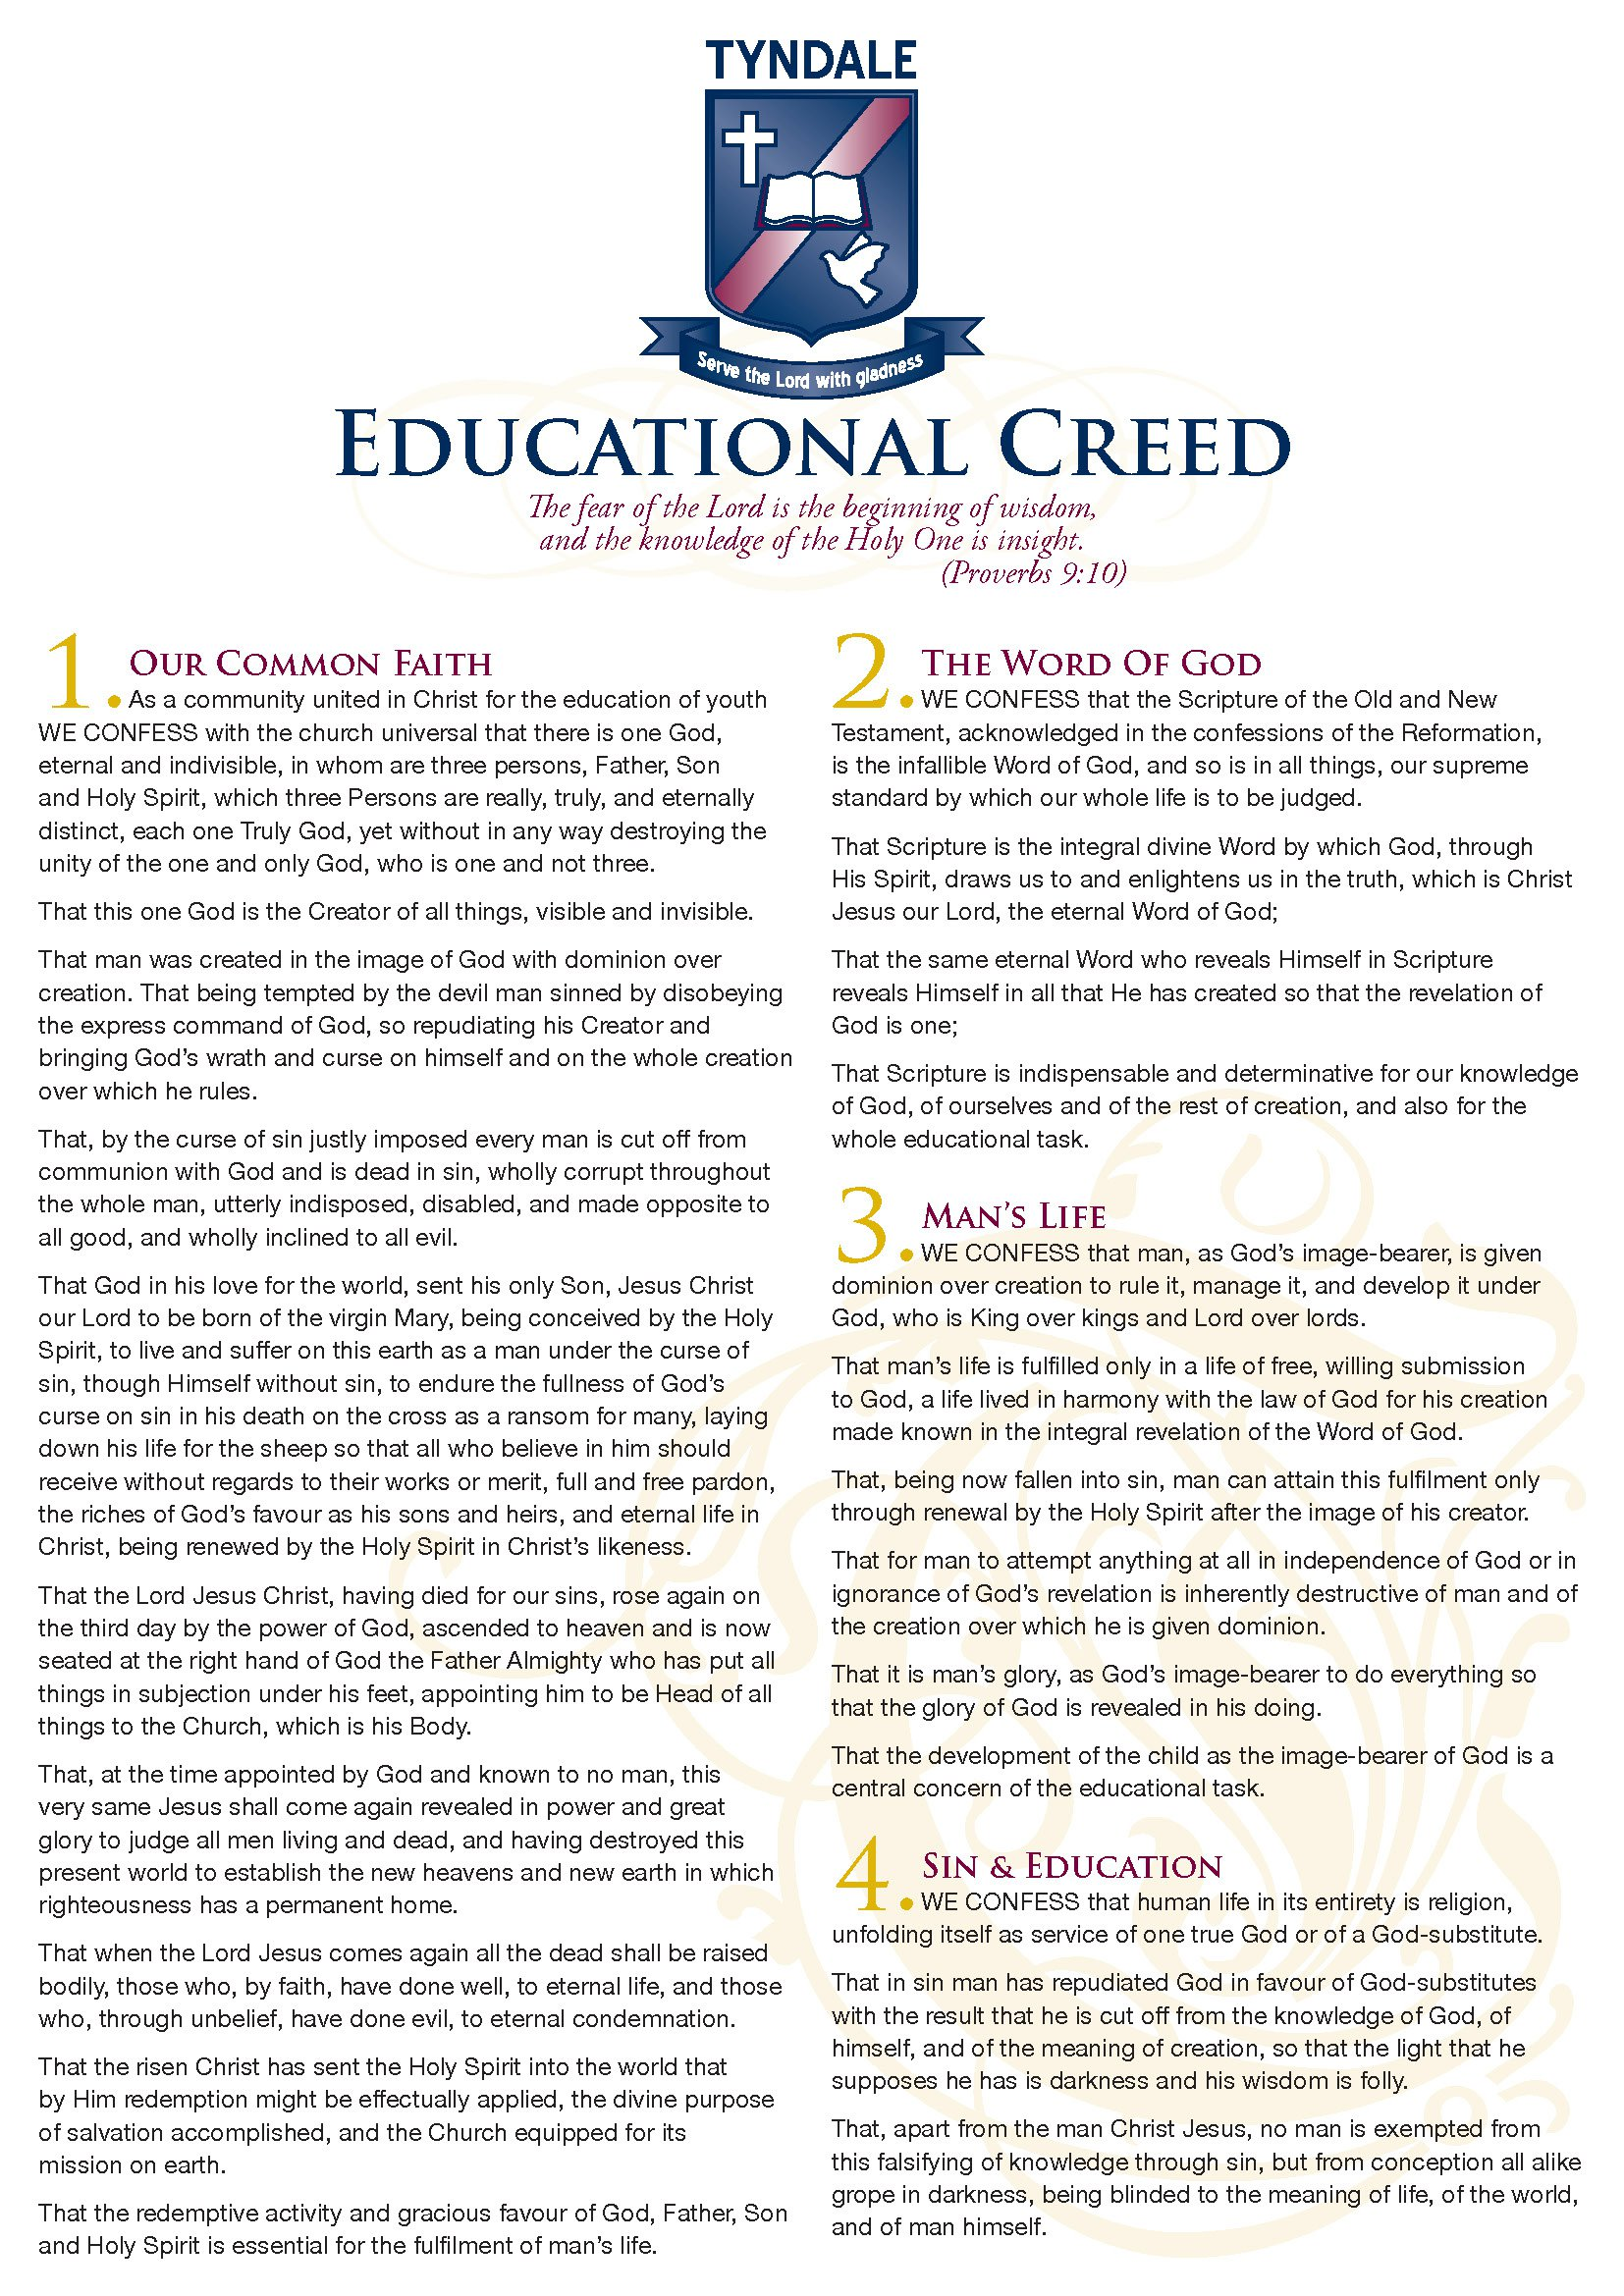 Tyndale-Educational-Creed_Page_1.jpg